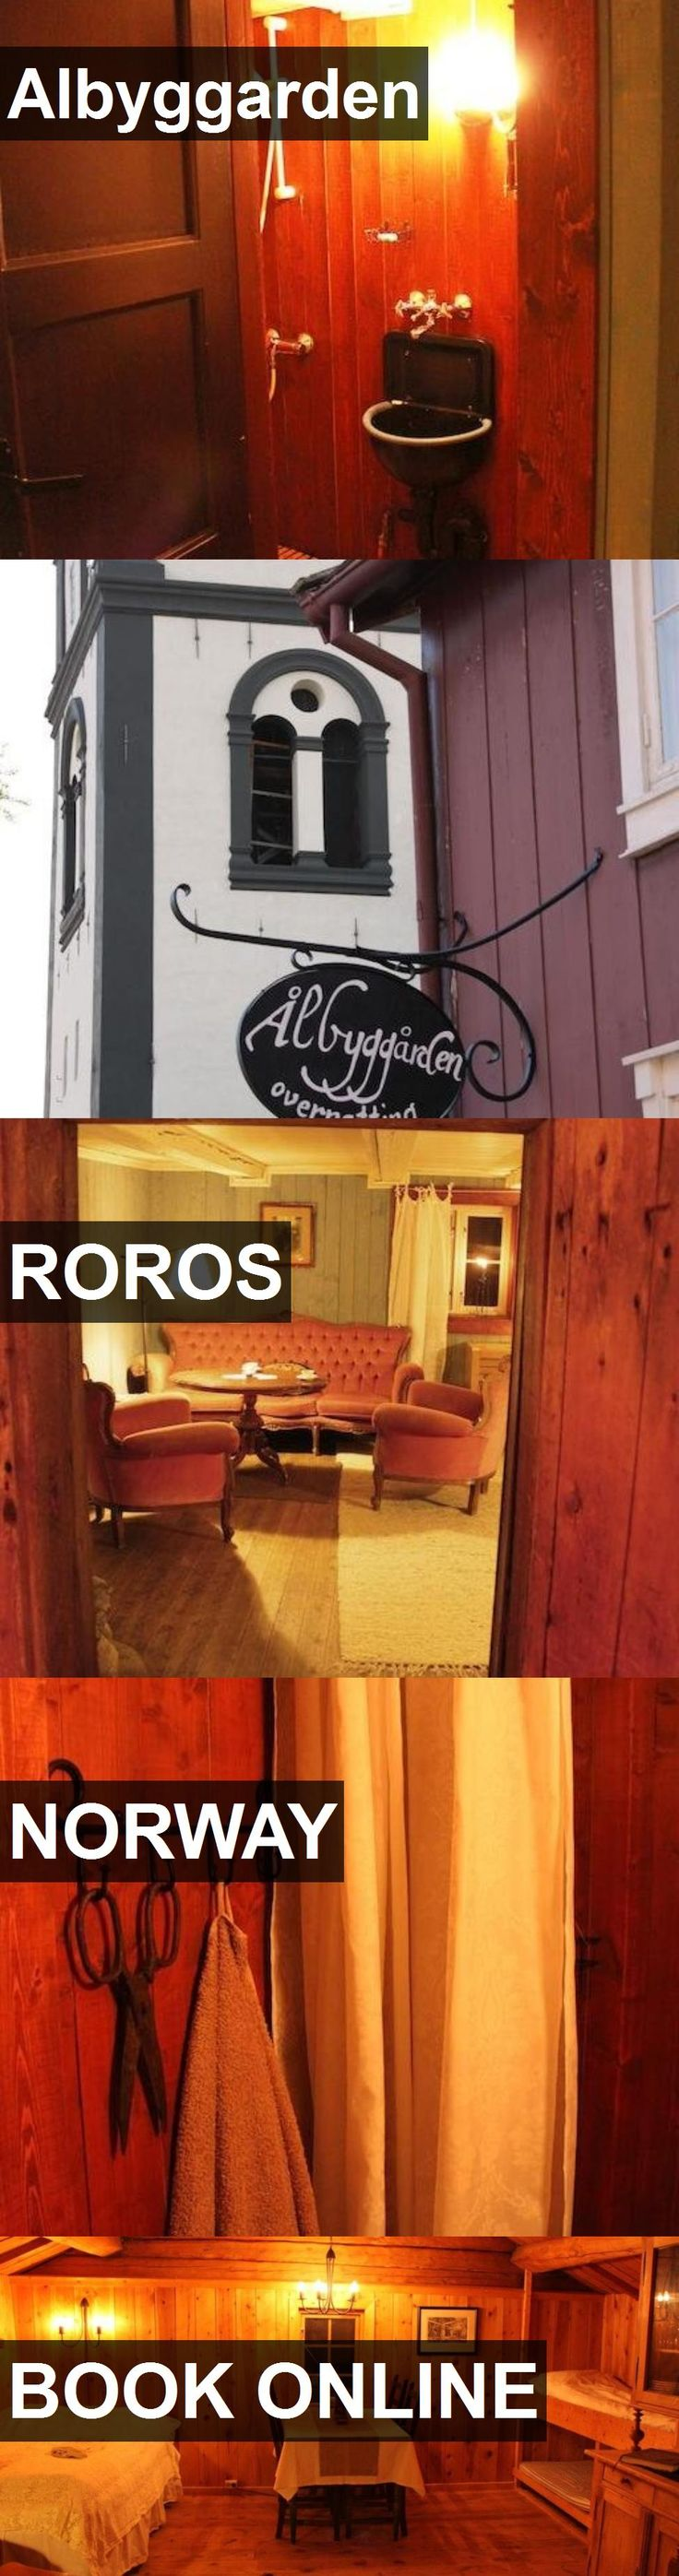 Hotel Albyggarden in Roros, Norway. For more information, photos, reviews and best prices please follow the link. #Norway #Roros #travel #vacation #hotel